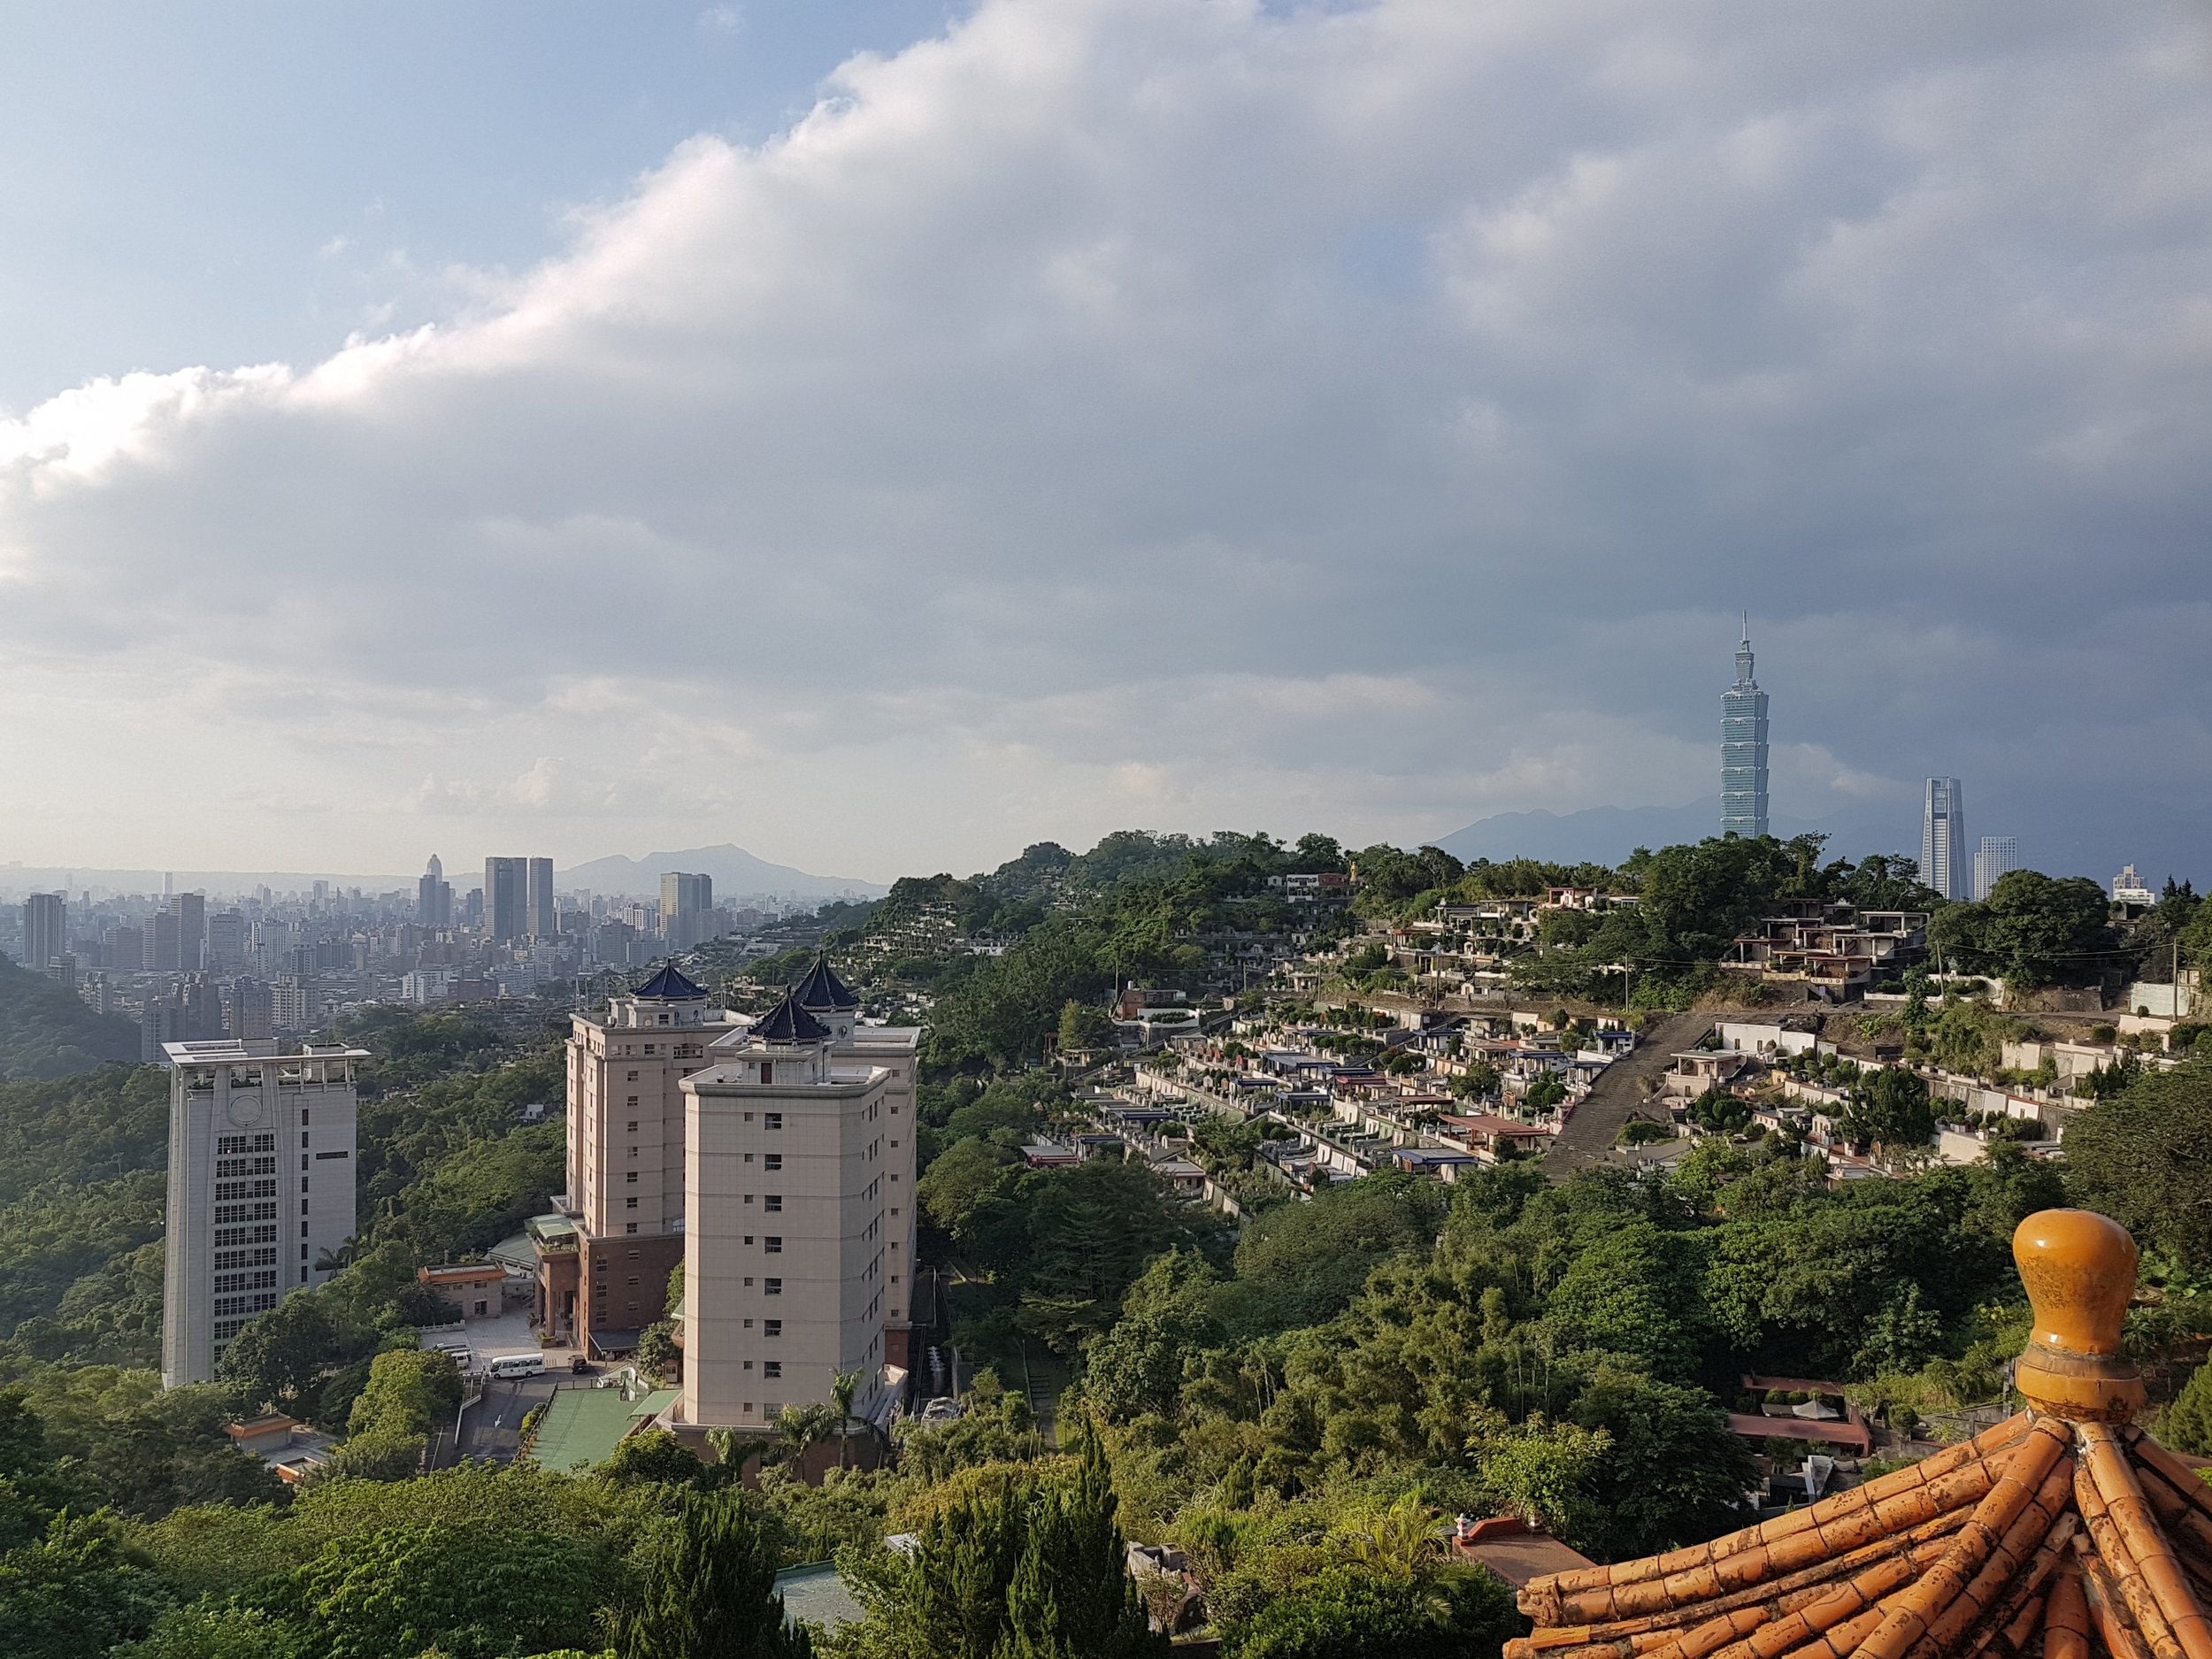 Above Taipei on a clear day